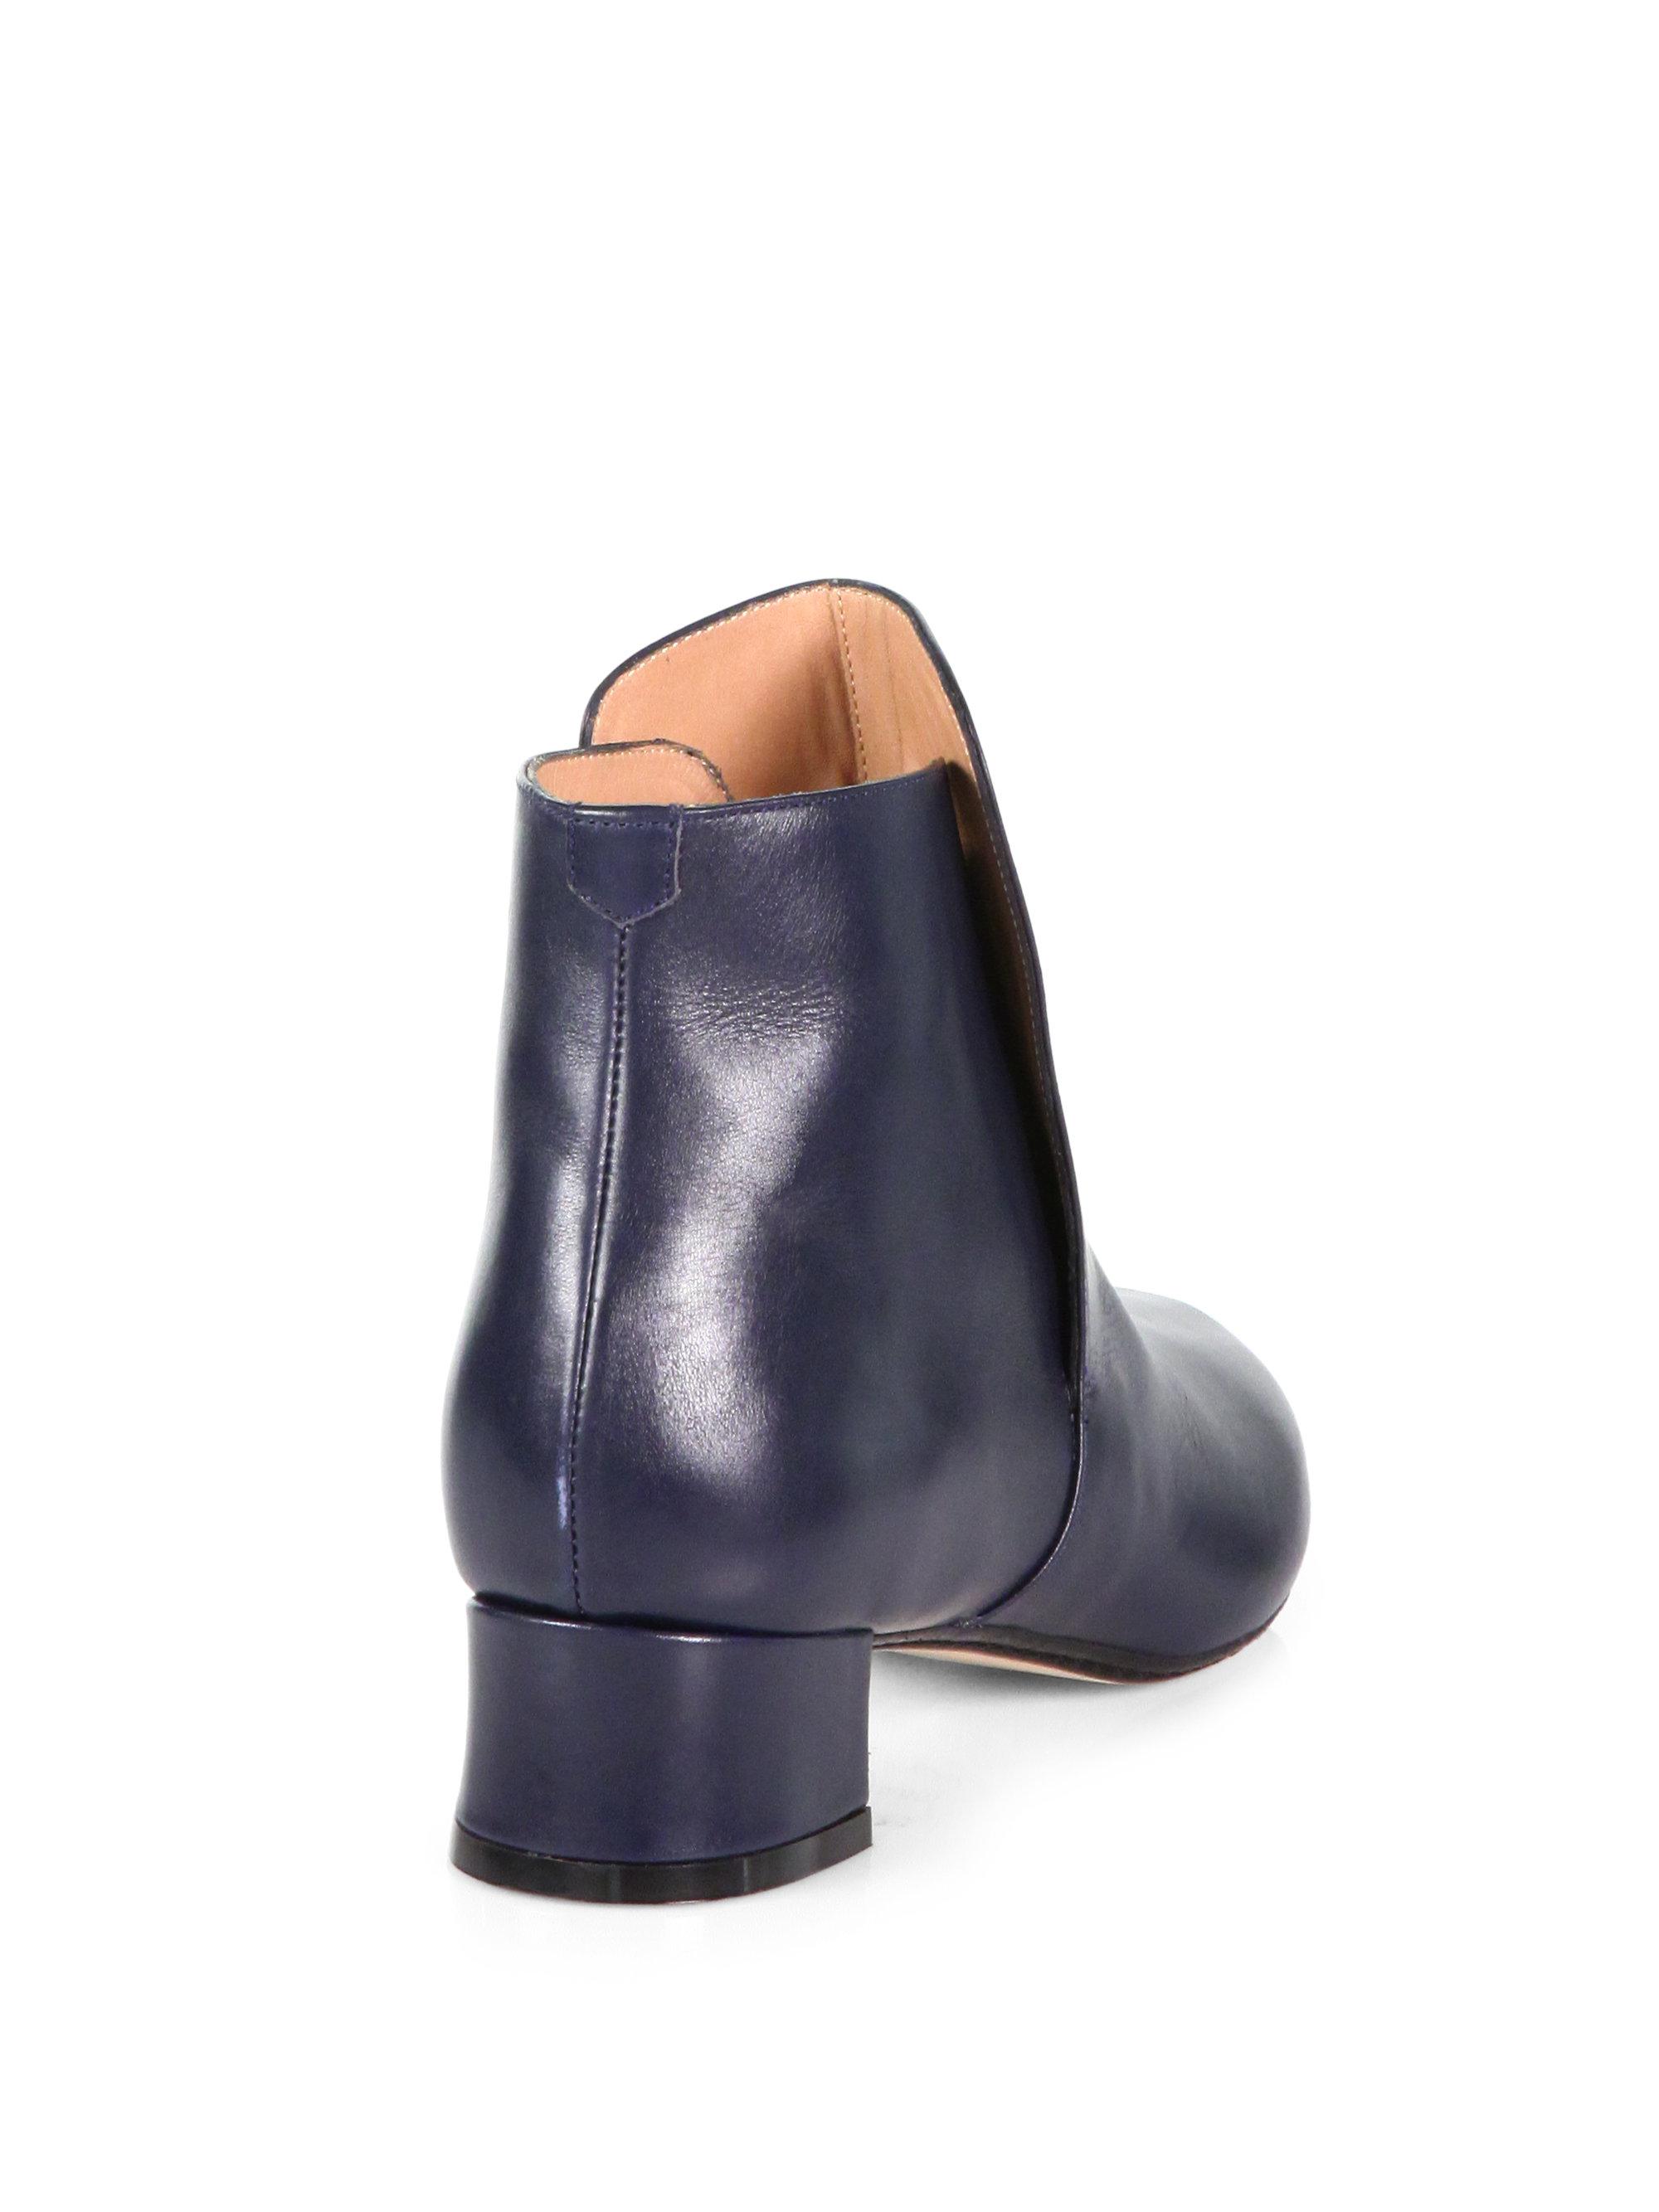 Robert clergerie Snob Leather Ankle Boots in Blue | Lyst